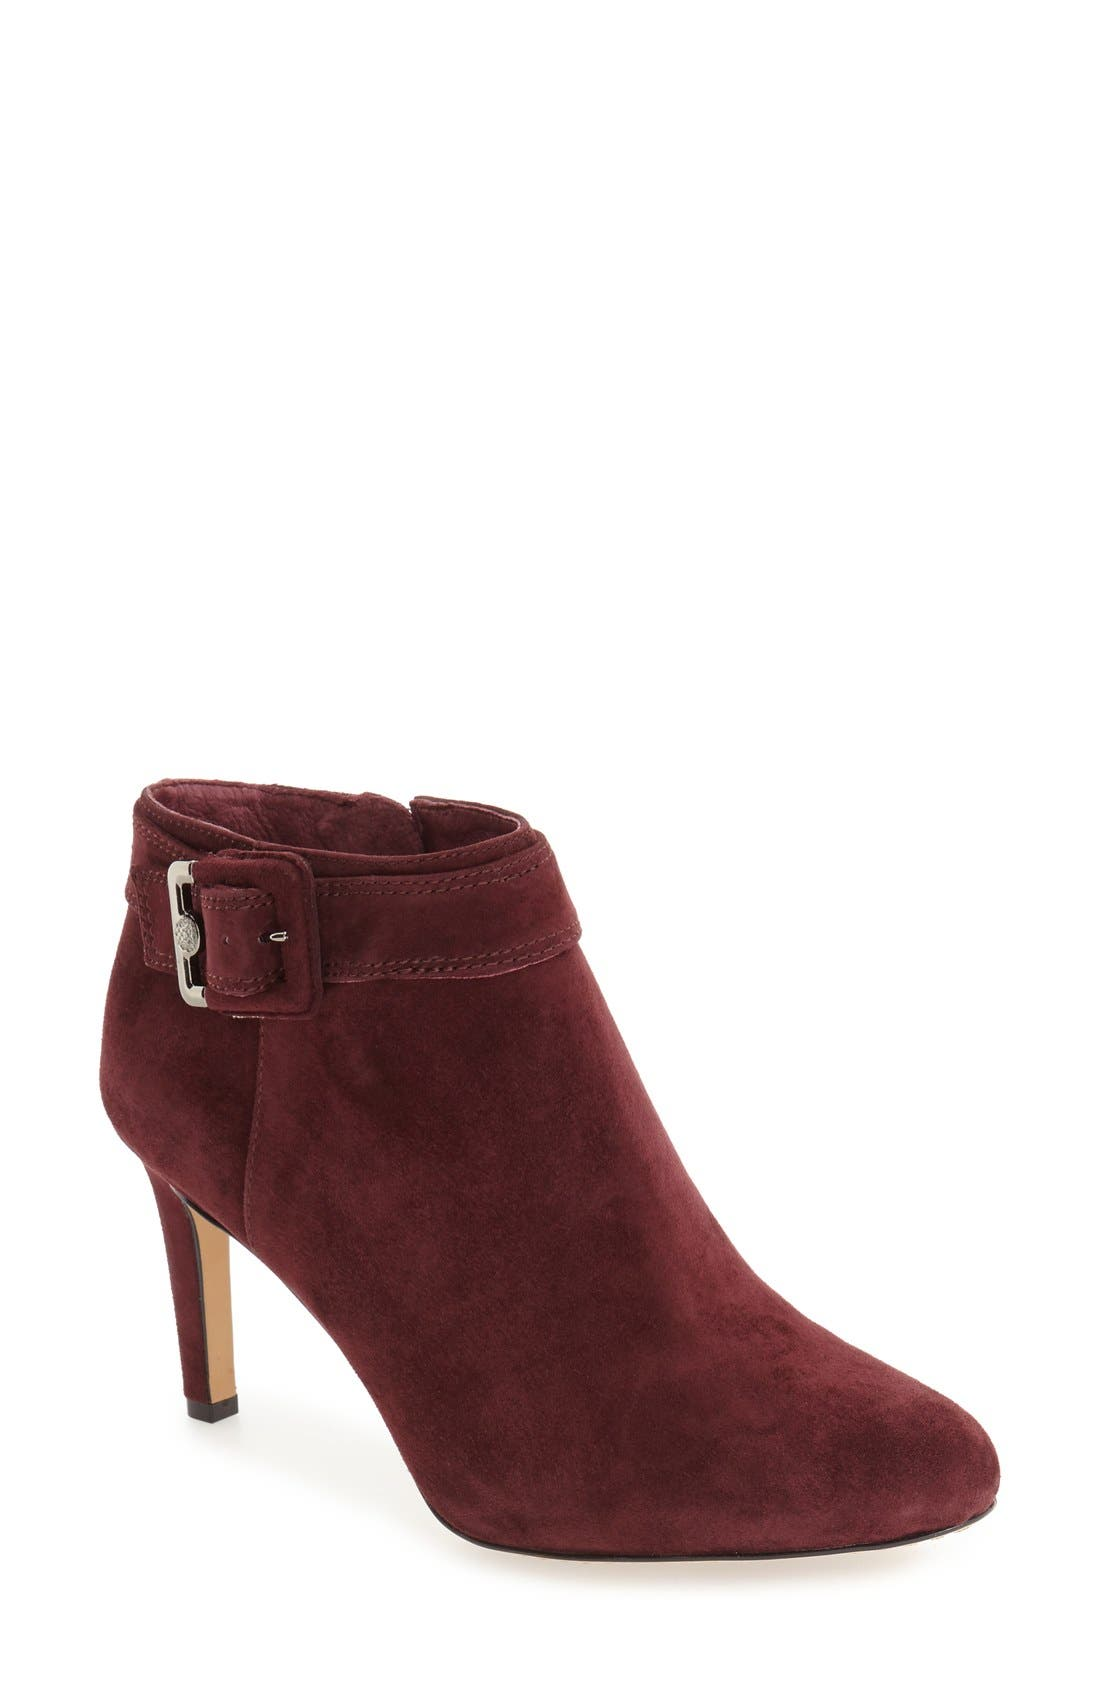 Main Image - Vince Camuto 'Chrissa' Bootie (Women) (Nordstrom Exclusive)